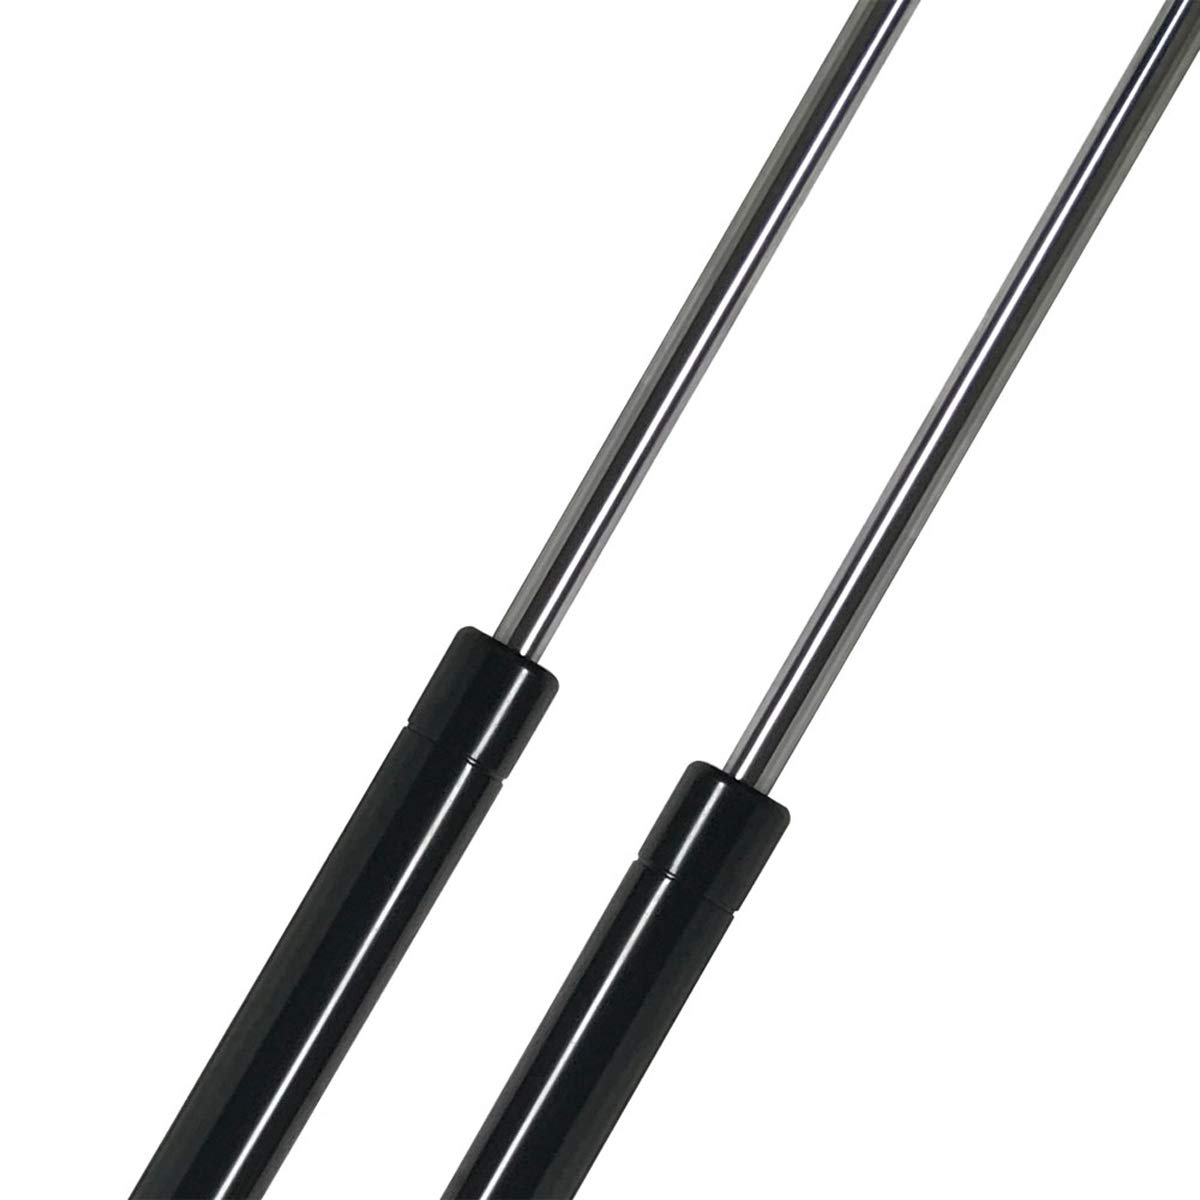 TRIL GEAR 2PCS Rear Liftgate Lift Supports Struts Shocks Tailgate Gas Springs 4291 Compatible With 1997-2001 Jeep Cherokee 4291